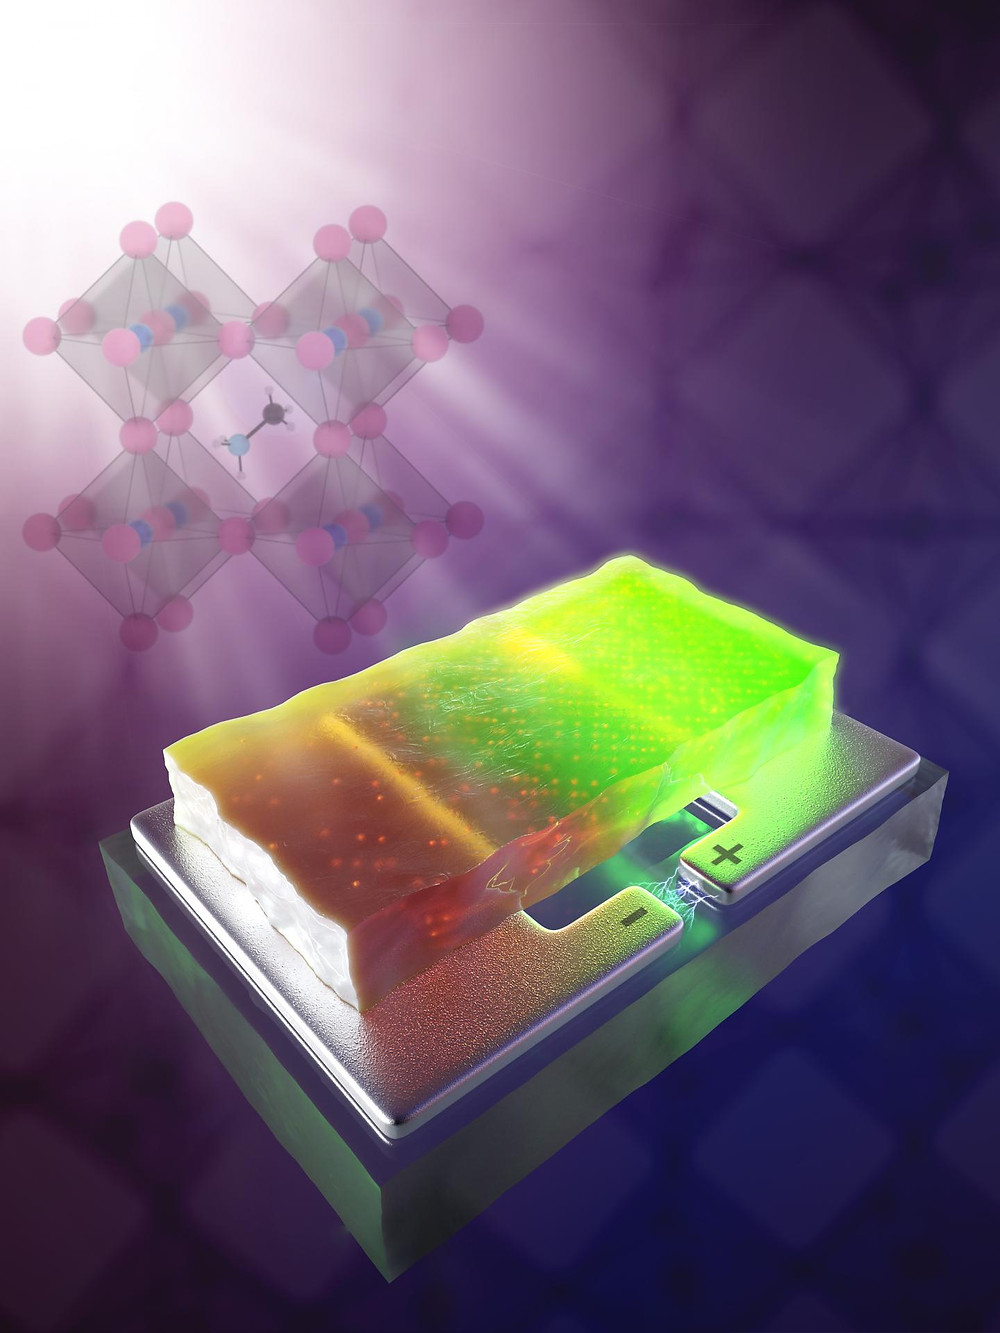 The inside back cover image of the Nov. 20, 2017 issue of Advanced Materials illustrates how ion migration in a hybrid perovskite crystal affects solar cell performance in different areas of the crystal. @ AMOLF